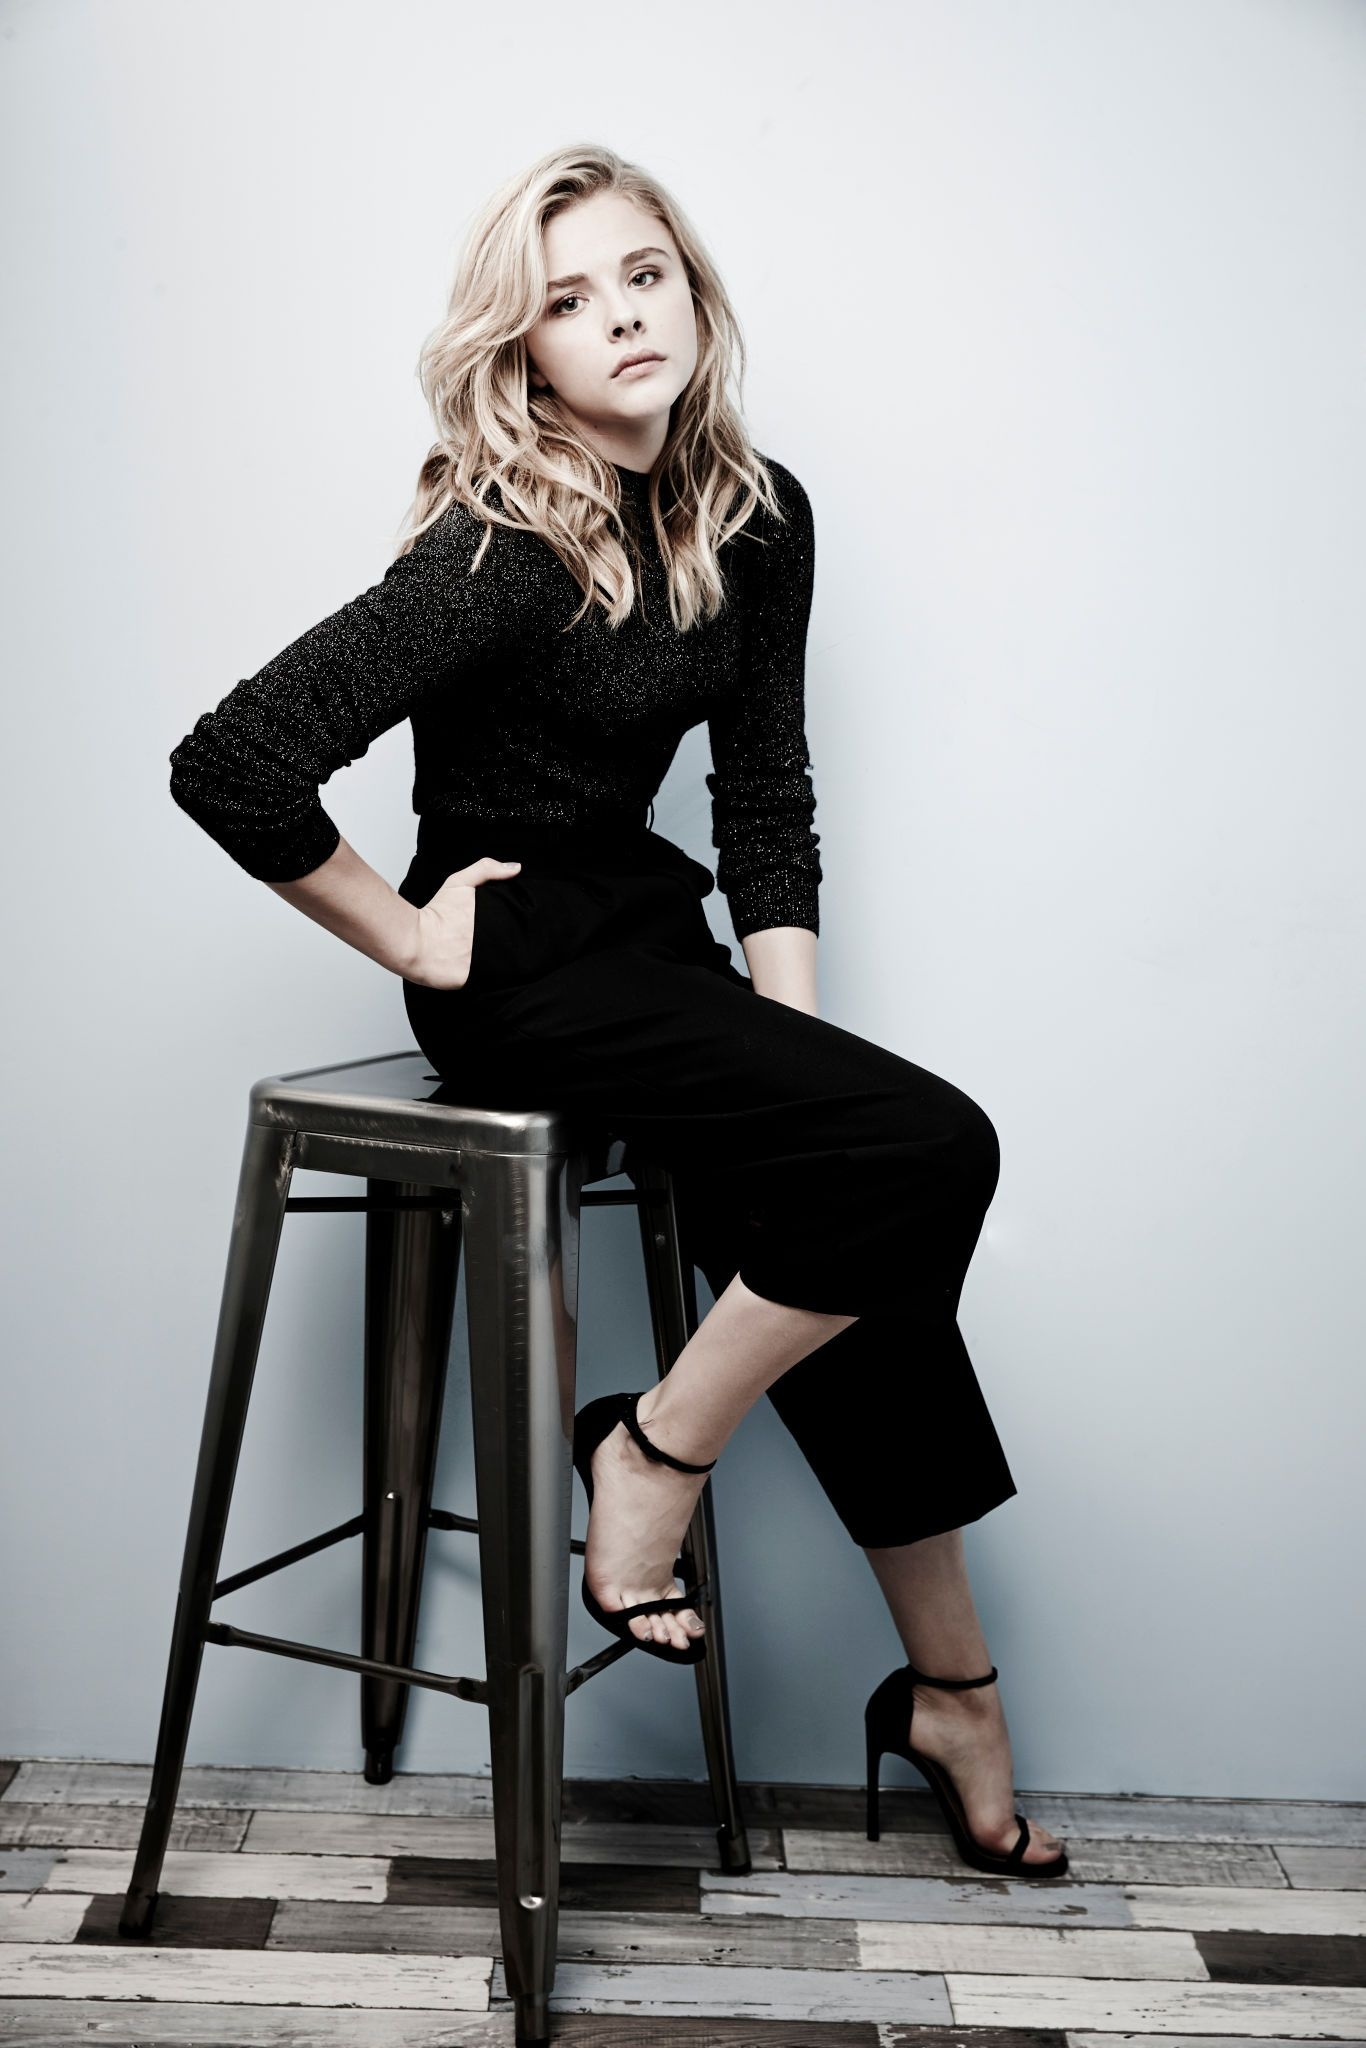 Share, rate and discuss pictures of Chloë Grace Moretz's feet on wikiFeet -  the most comprehensive celebrity feet database to ever have existed.